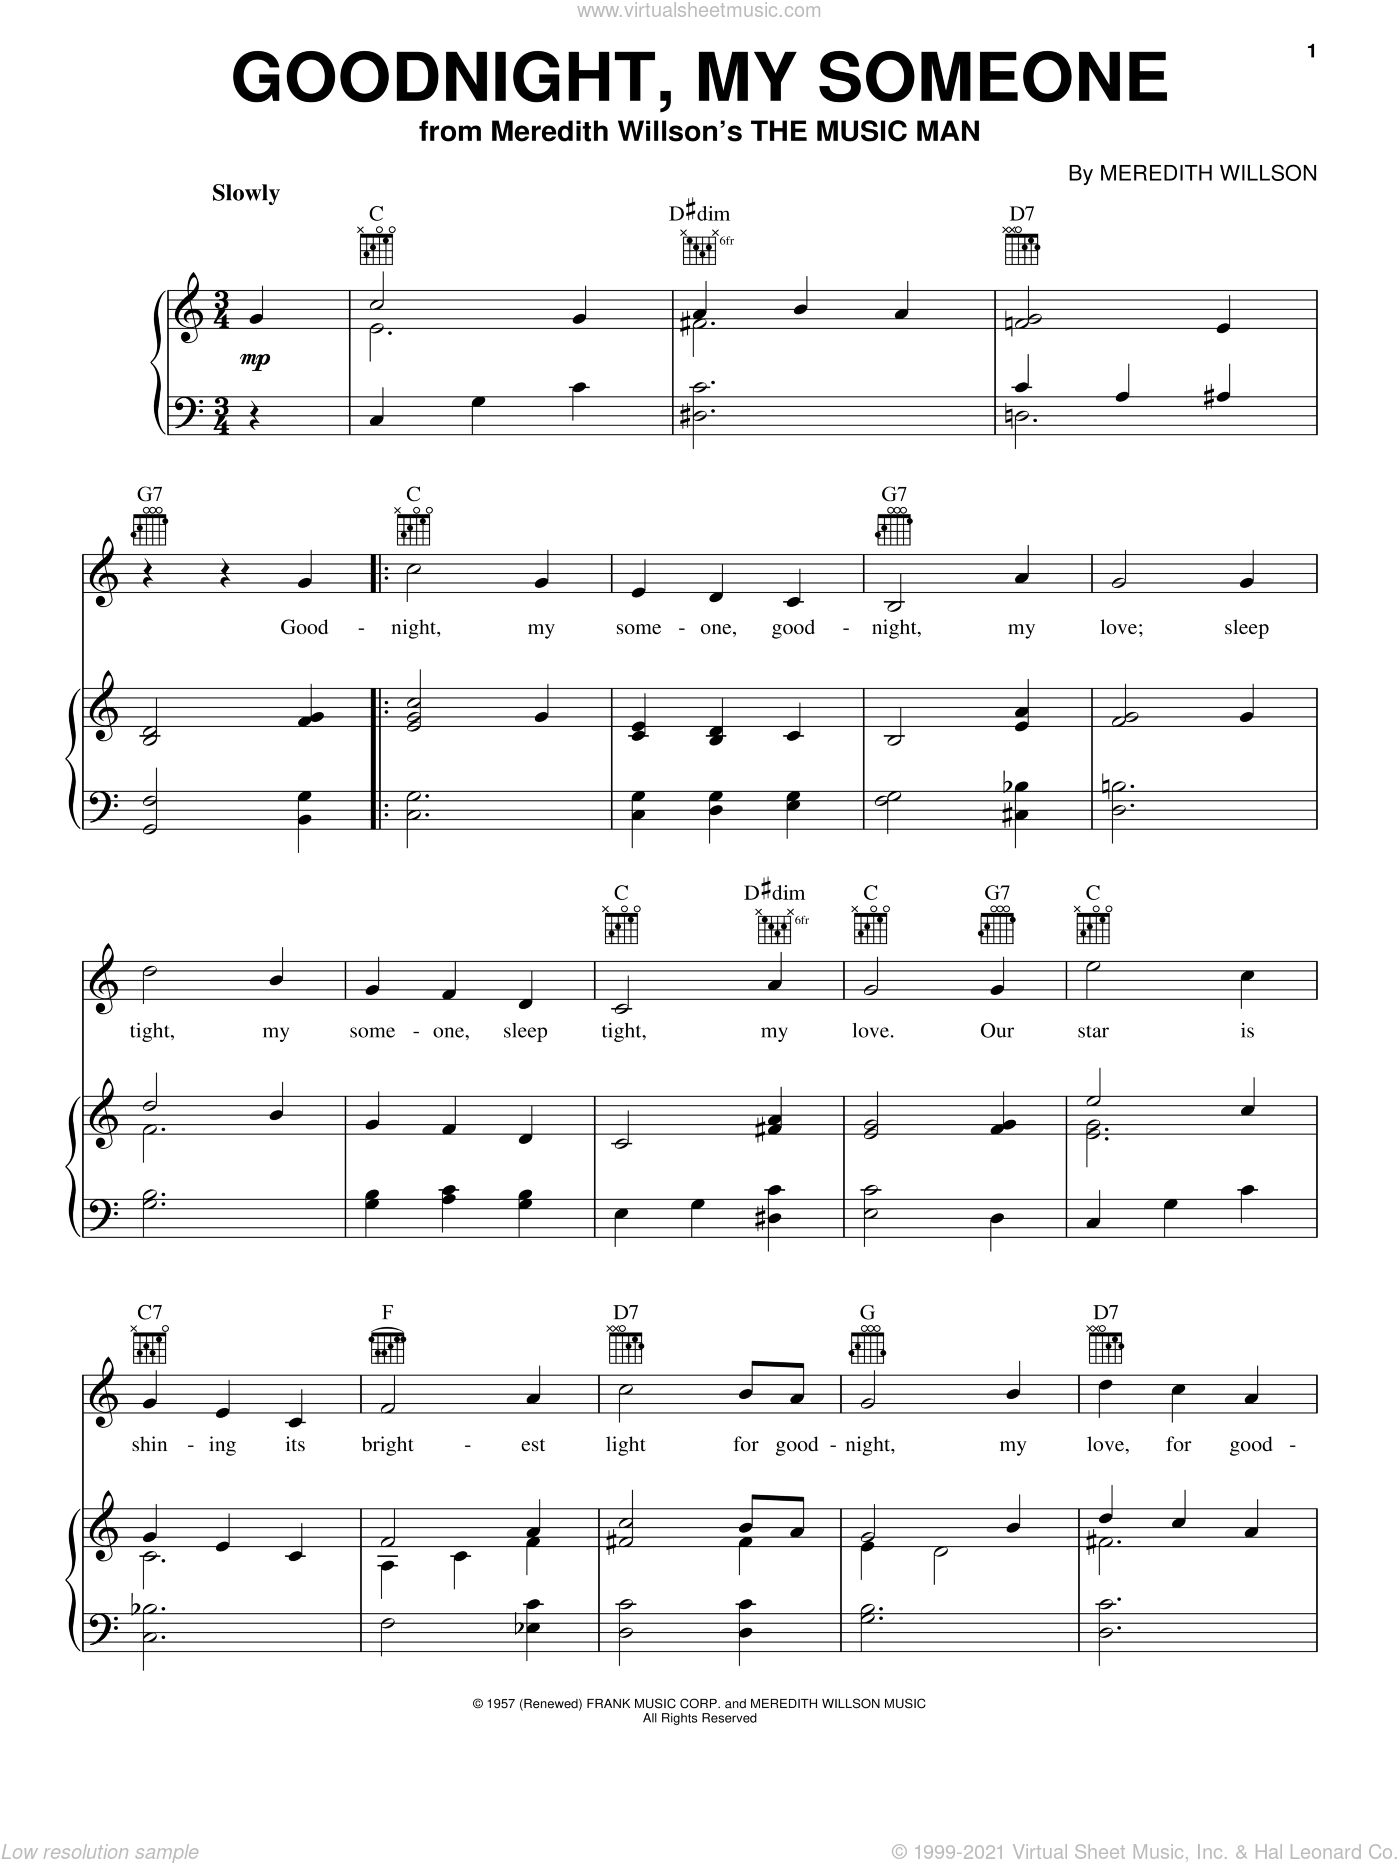 Goodnight, My Someone sheet music for voice, piano or guitar by Meredith Willson, intermediate skill level